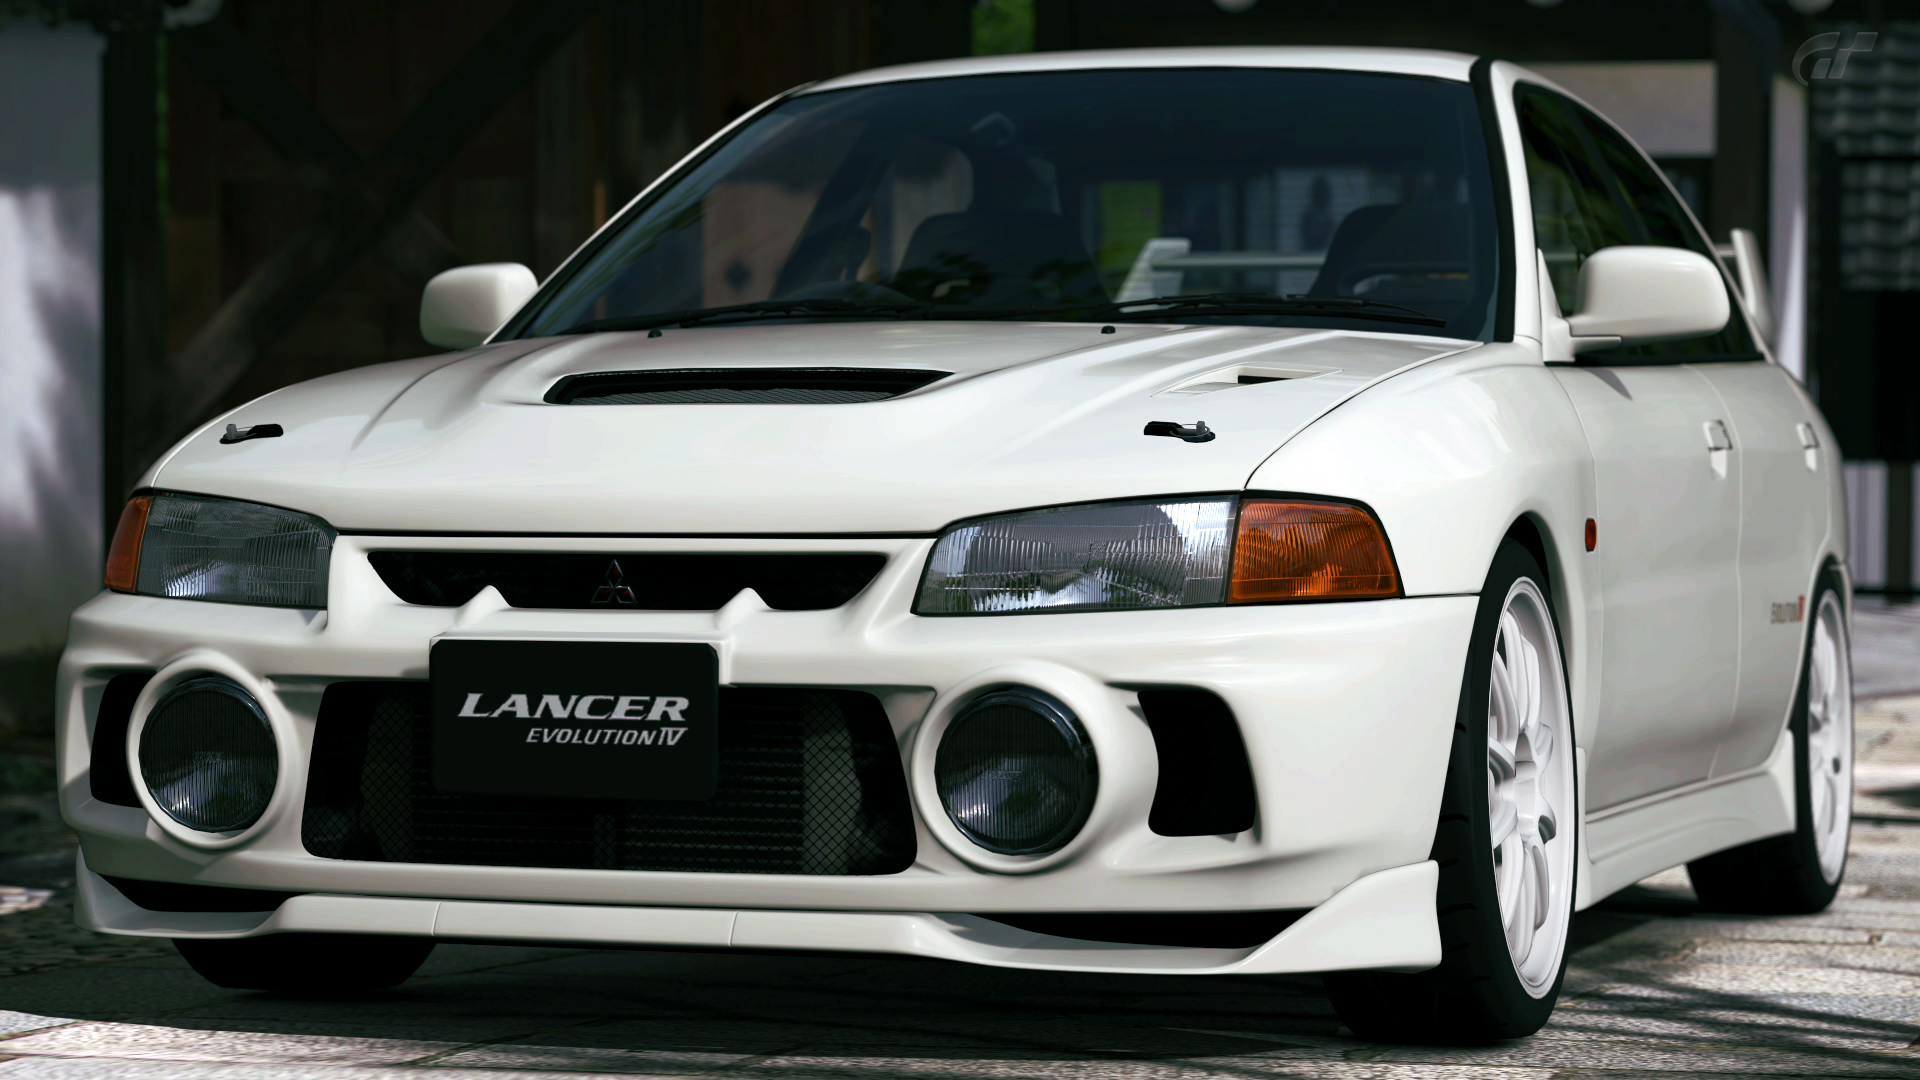 Mitsubishi Lancer Evolution IV 1996 - 1998 Sedan #5